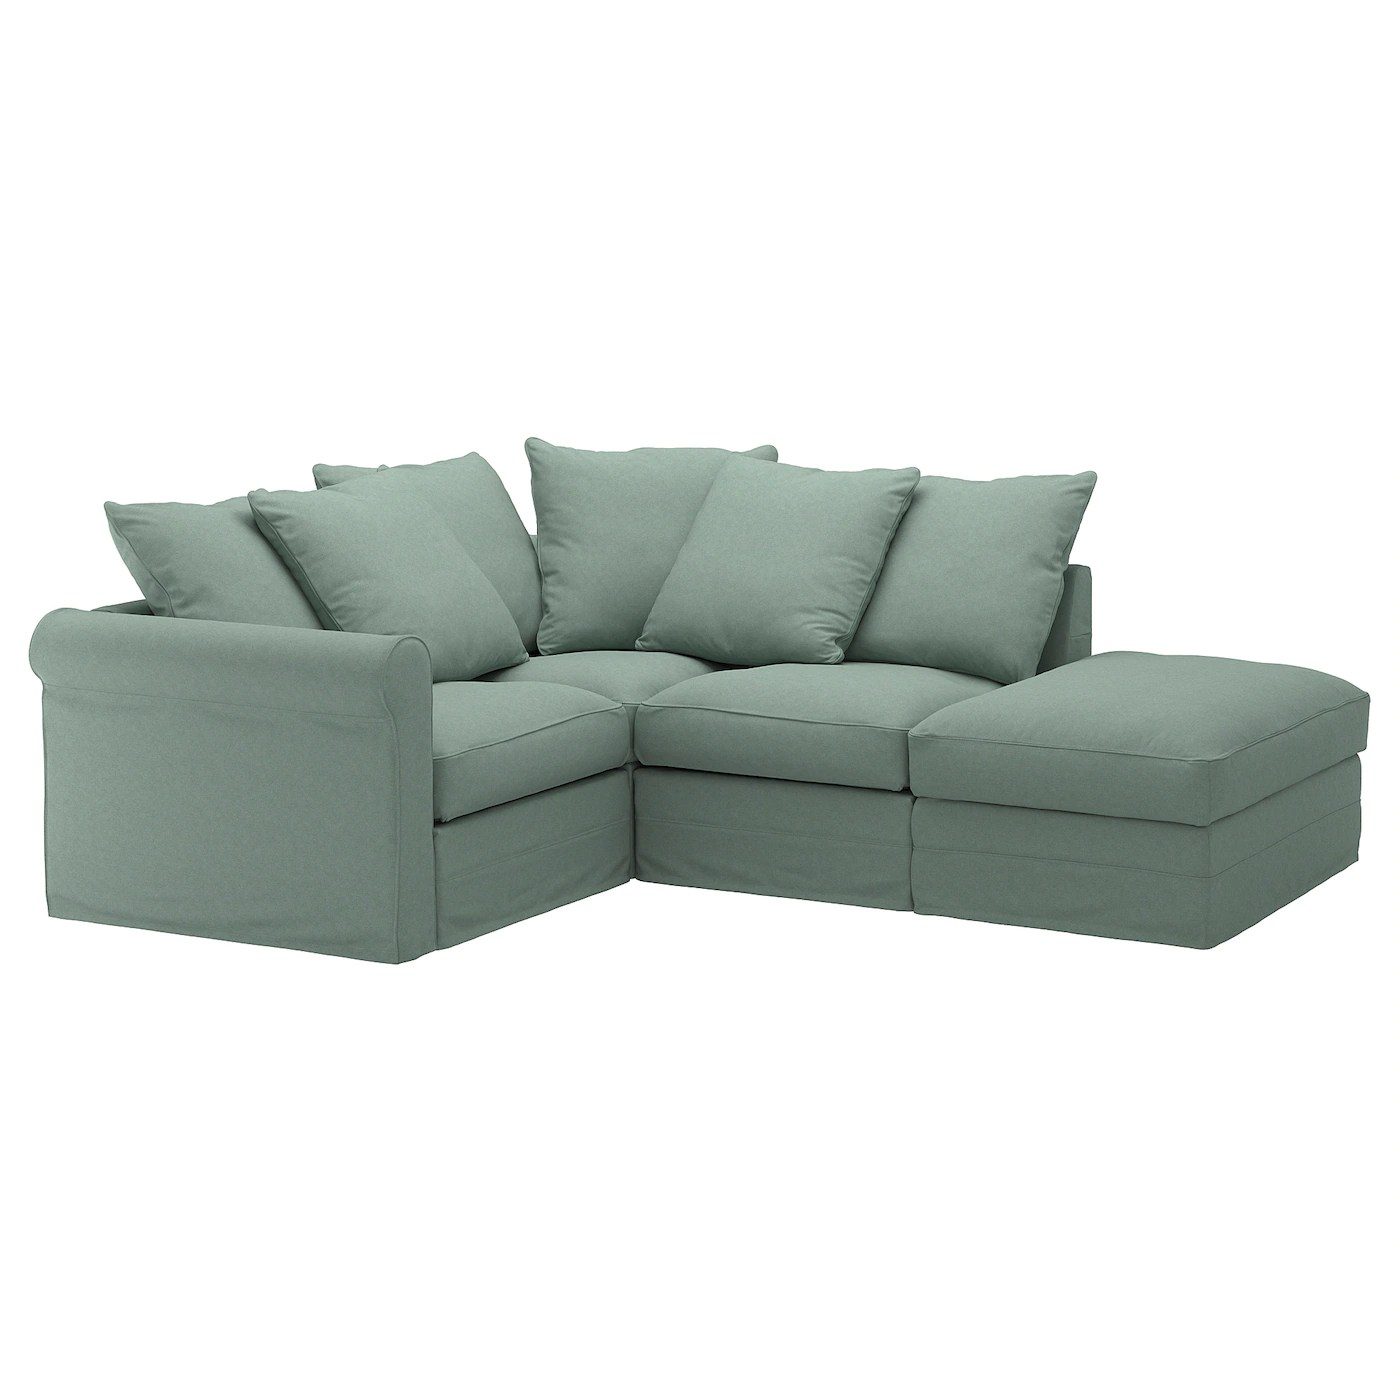 corner sofa bed recliner ikea large sofas gronlid 3 seat 10 year guarantee read about the terms